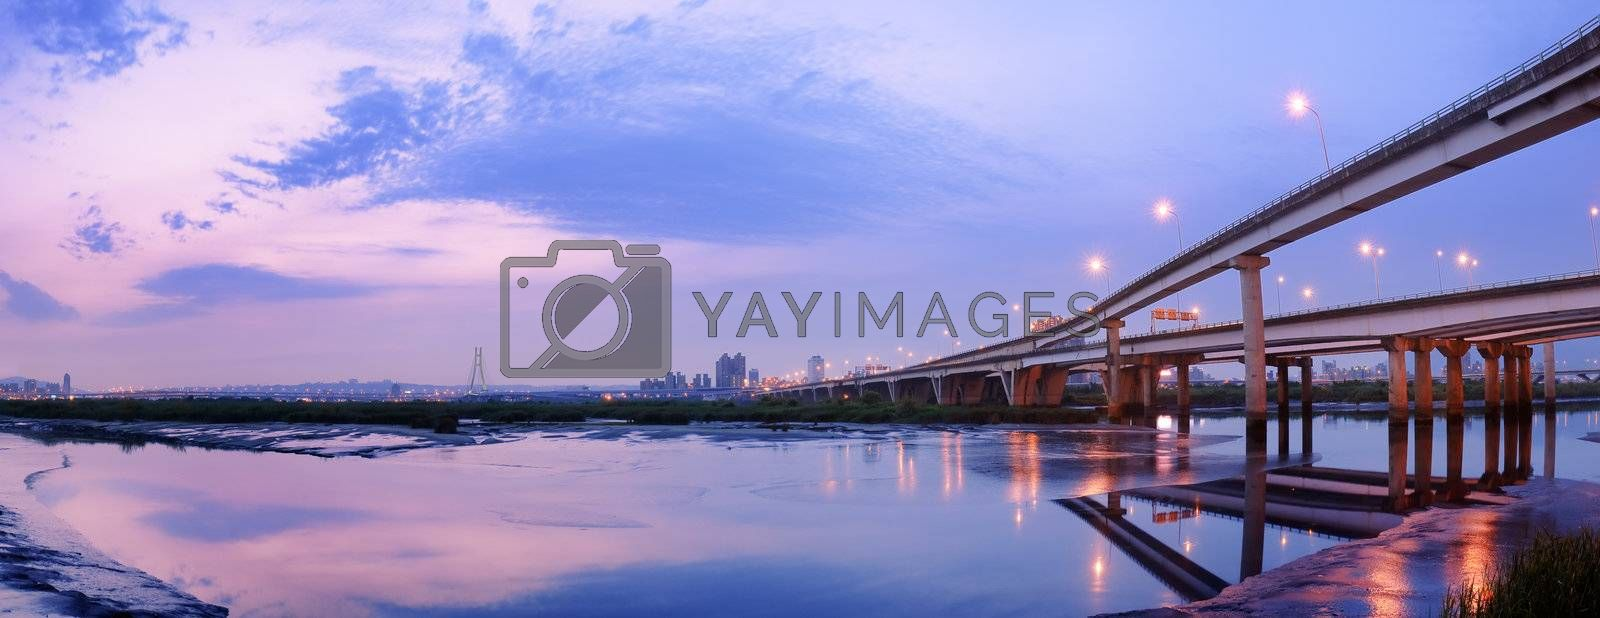 Panoramic cityscape with modern building and bridge under dramatic sky and illuminated reflection on sand and water of river in Taipei, Taiwan.